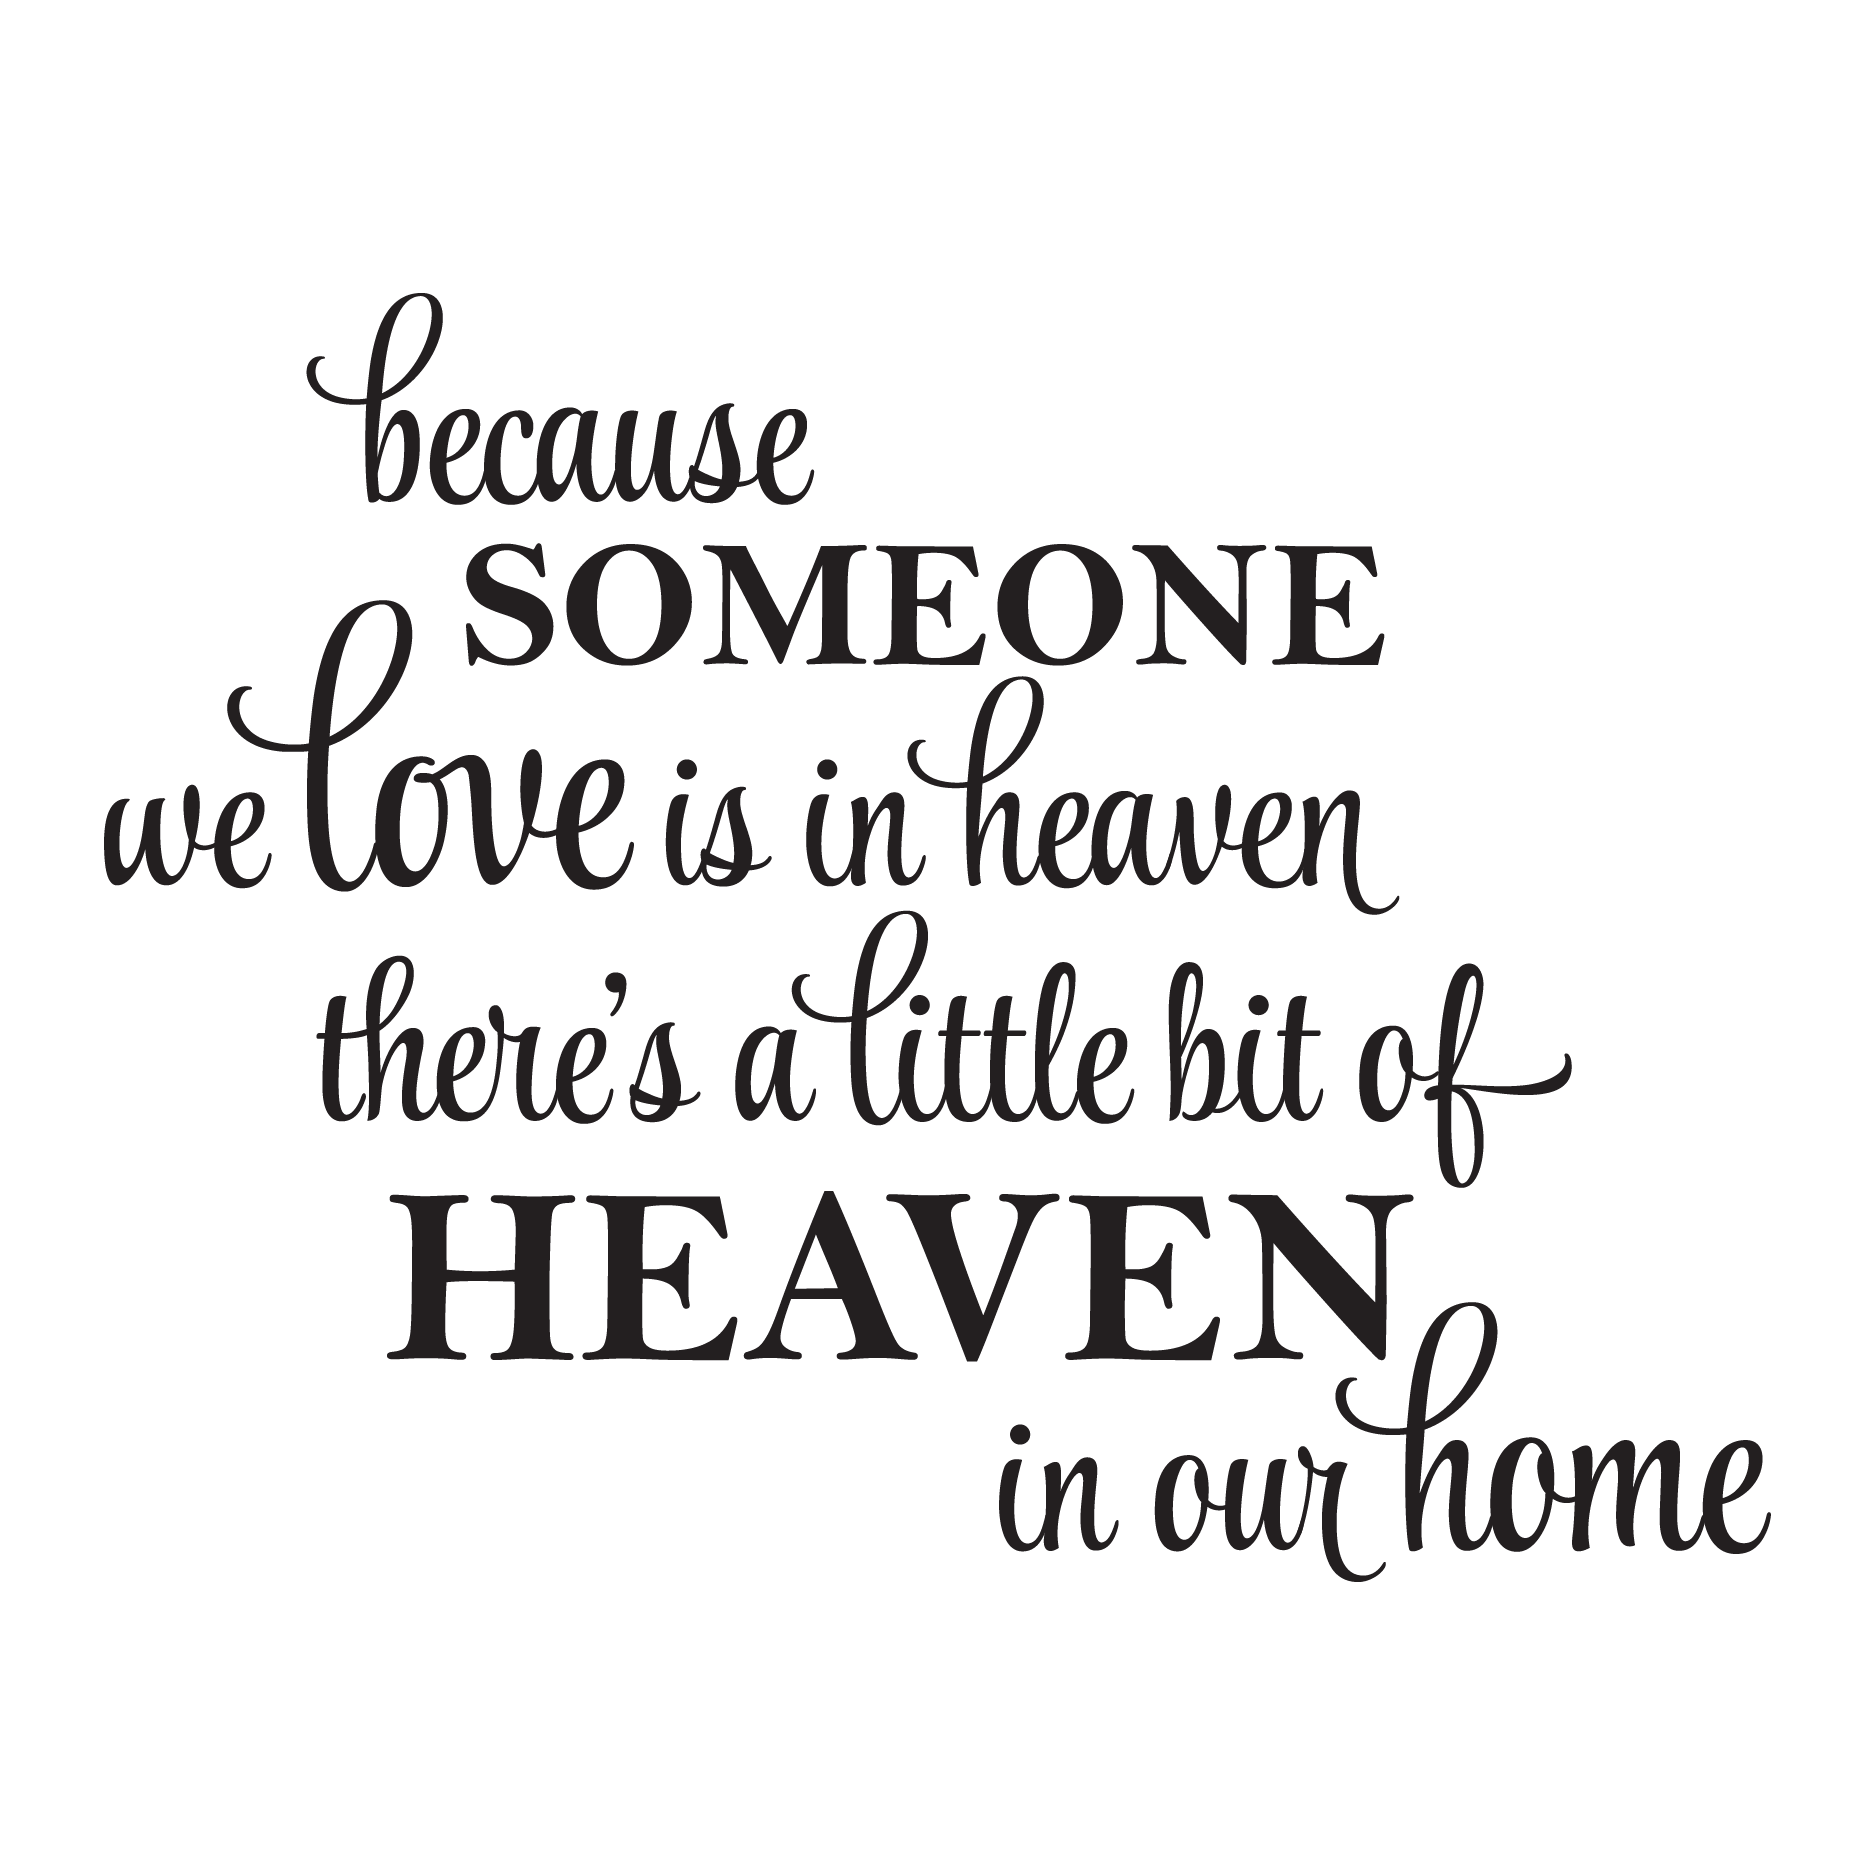 Because someone we love is in heaven png. A little bit of